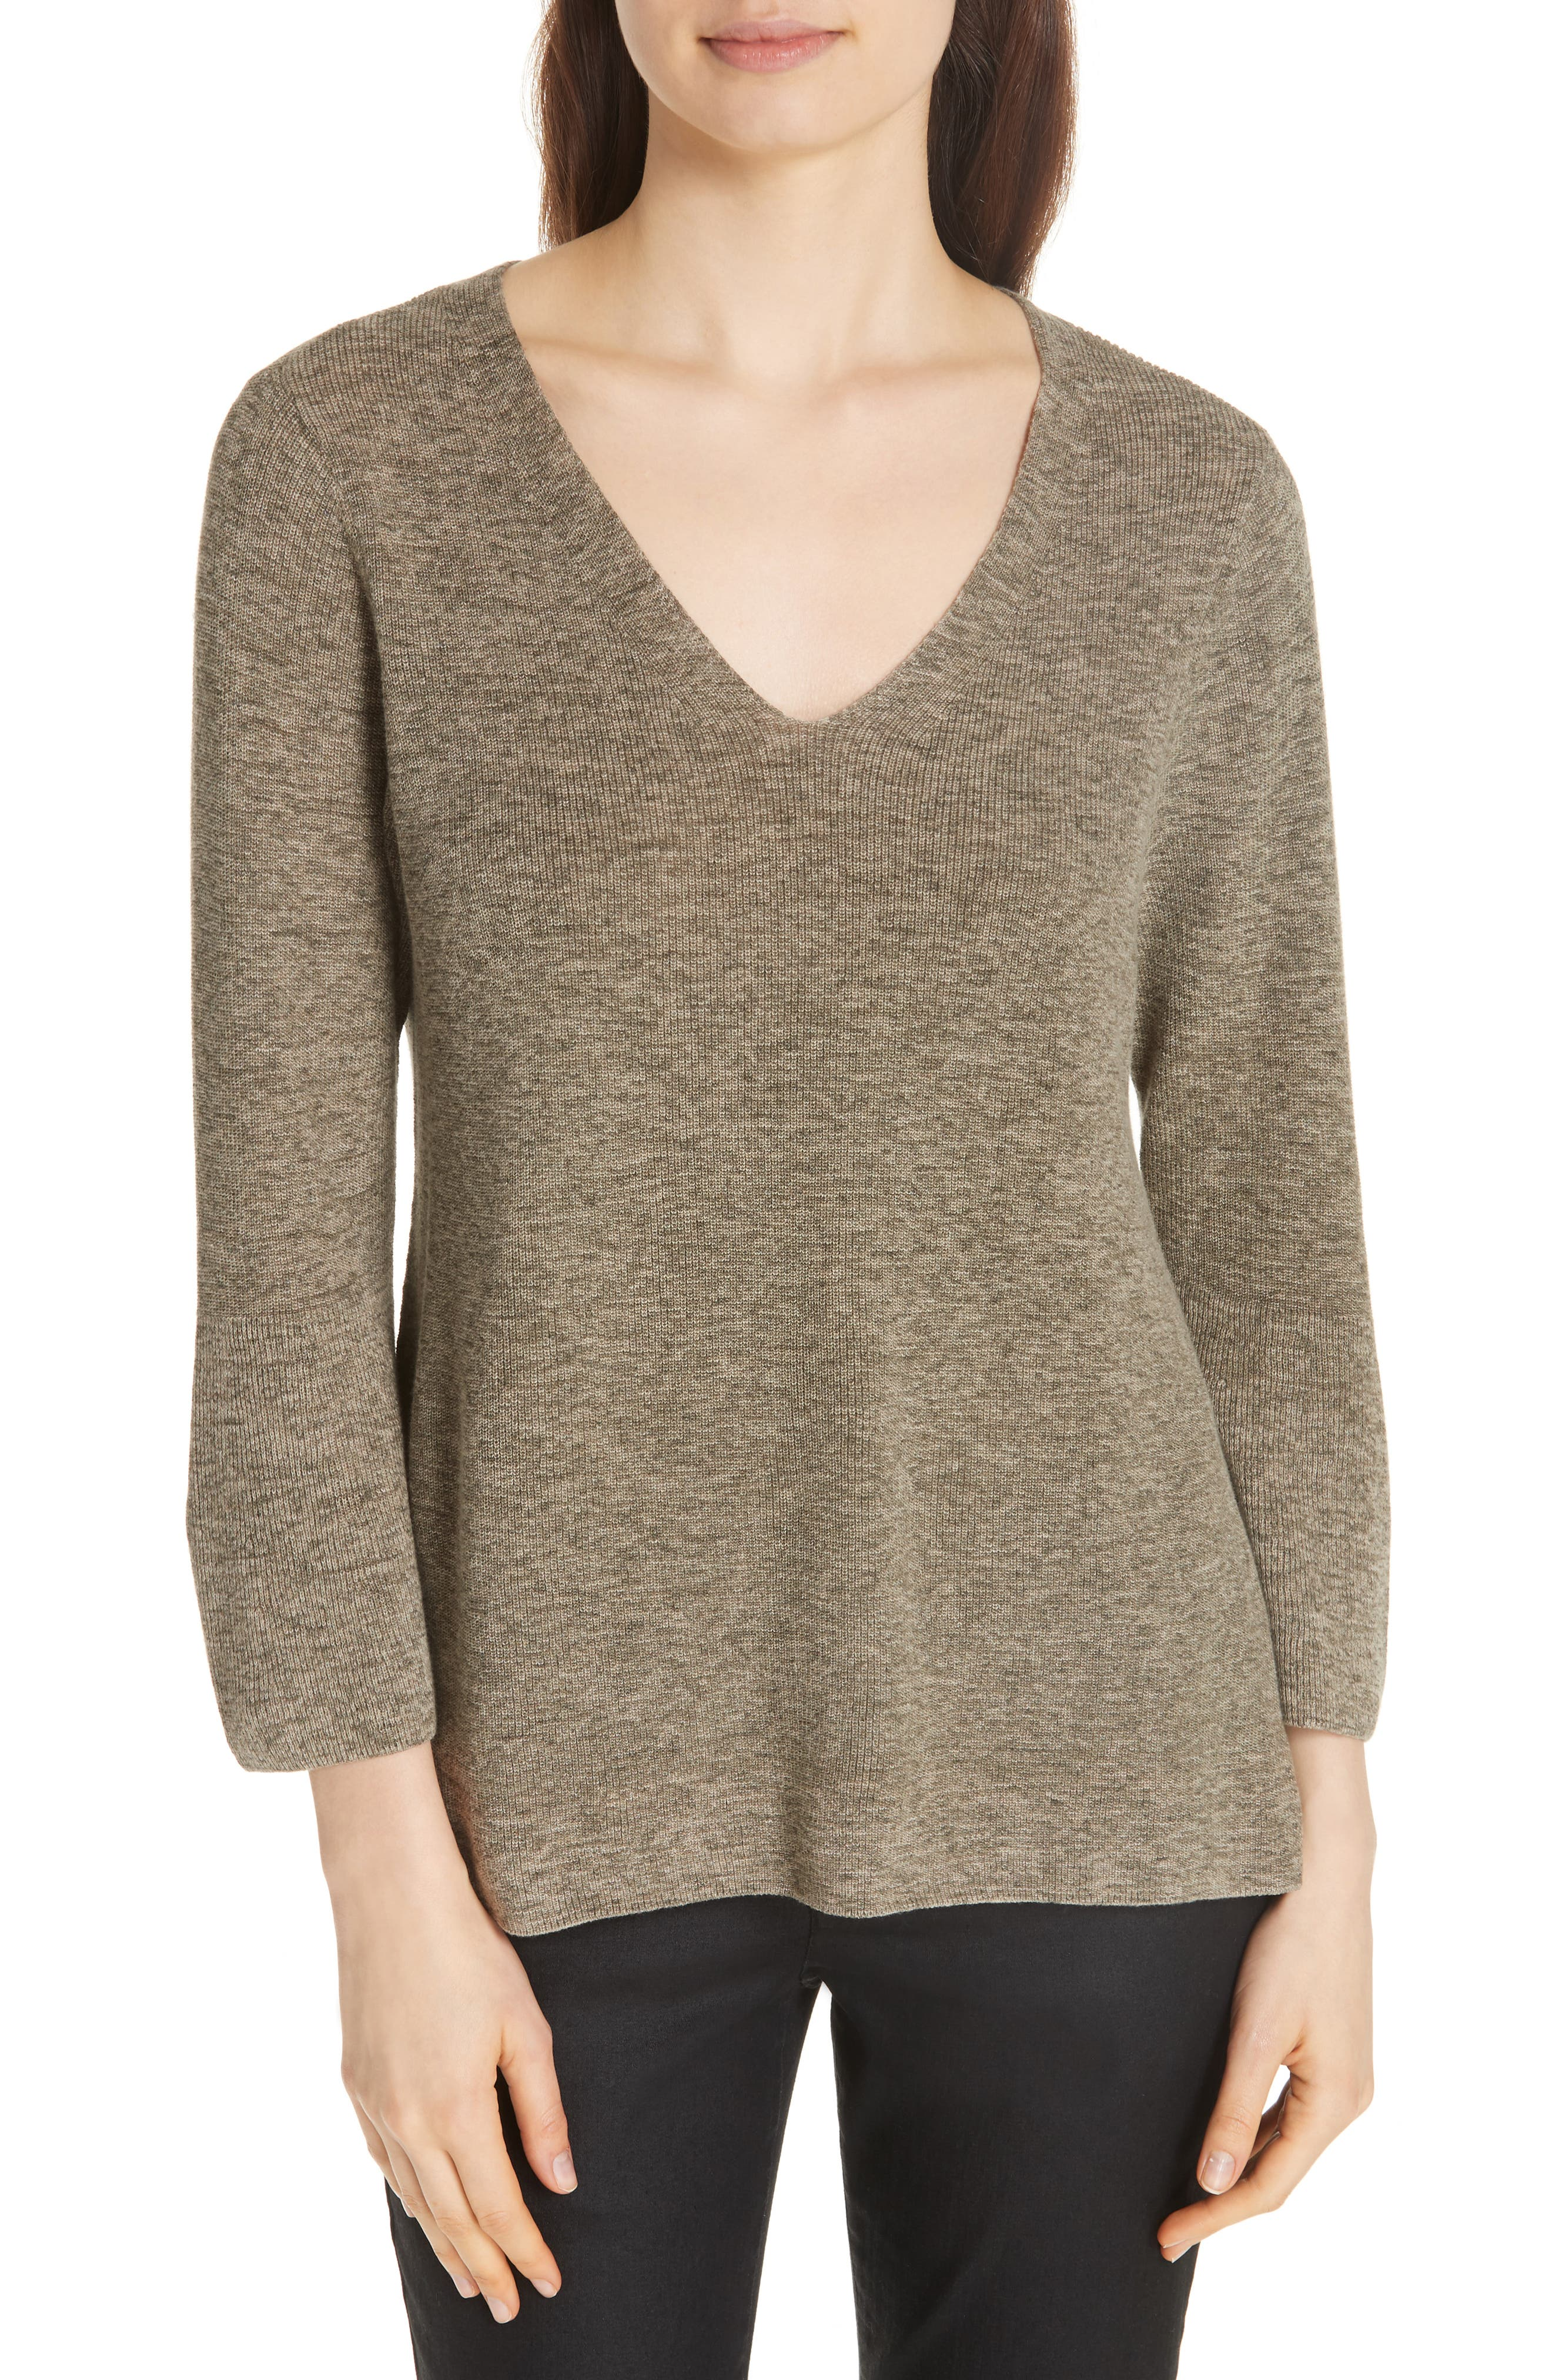 Bell Cuff Organic Cotton Sweater,                         Main,                         color, Olive